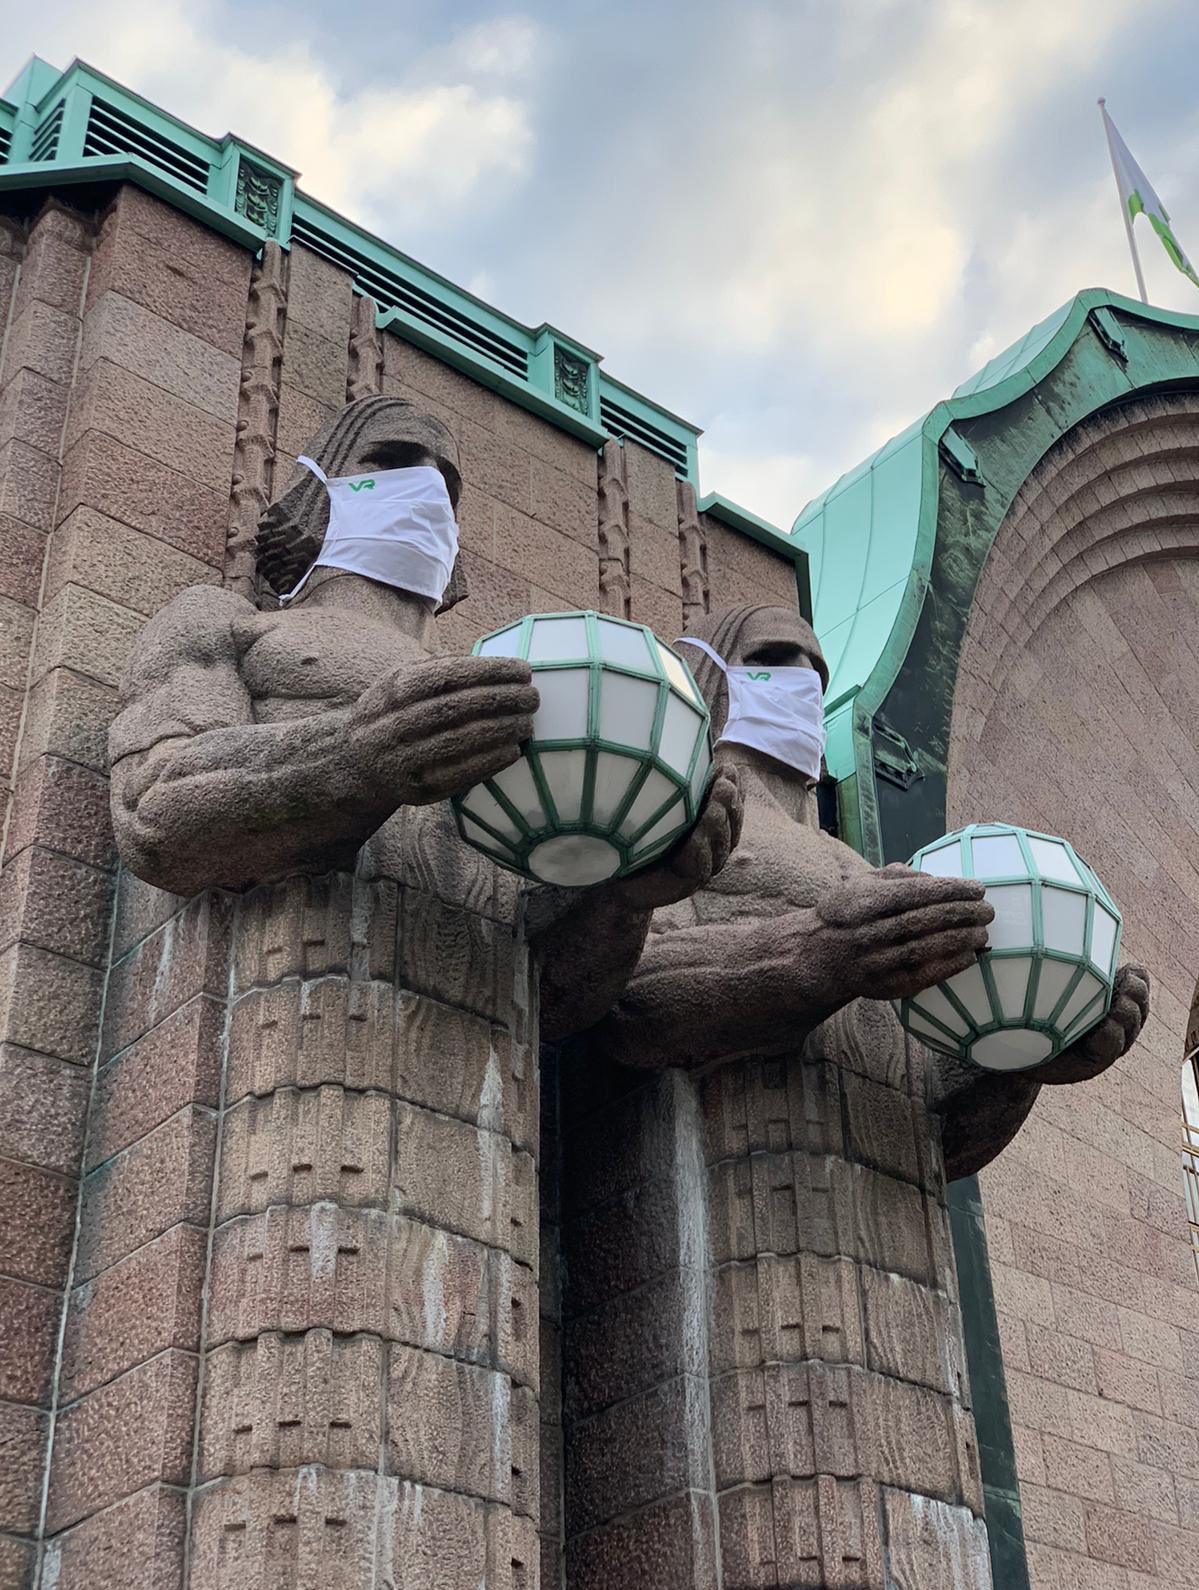 helsinki train station statues in masks